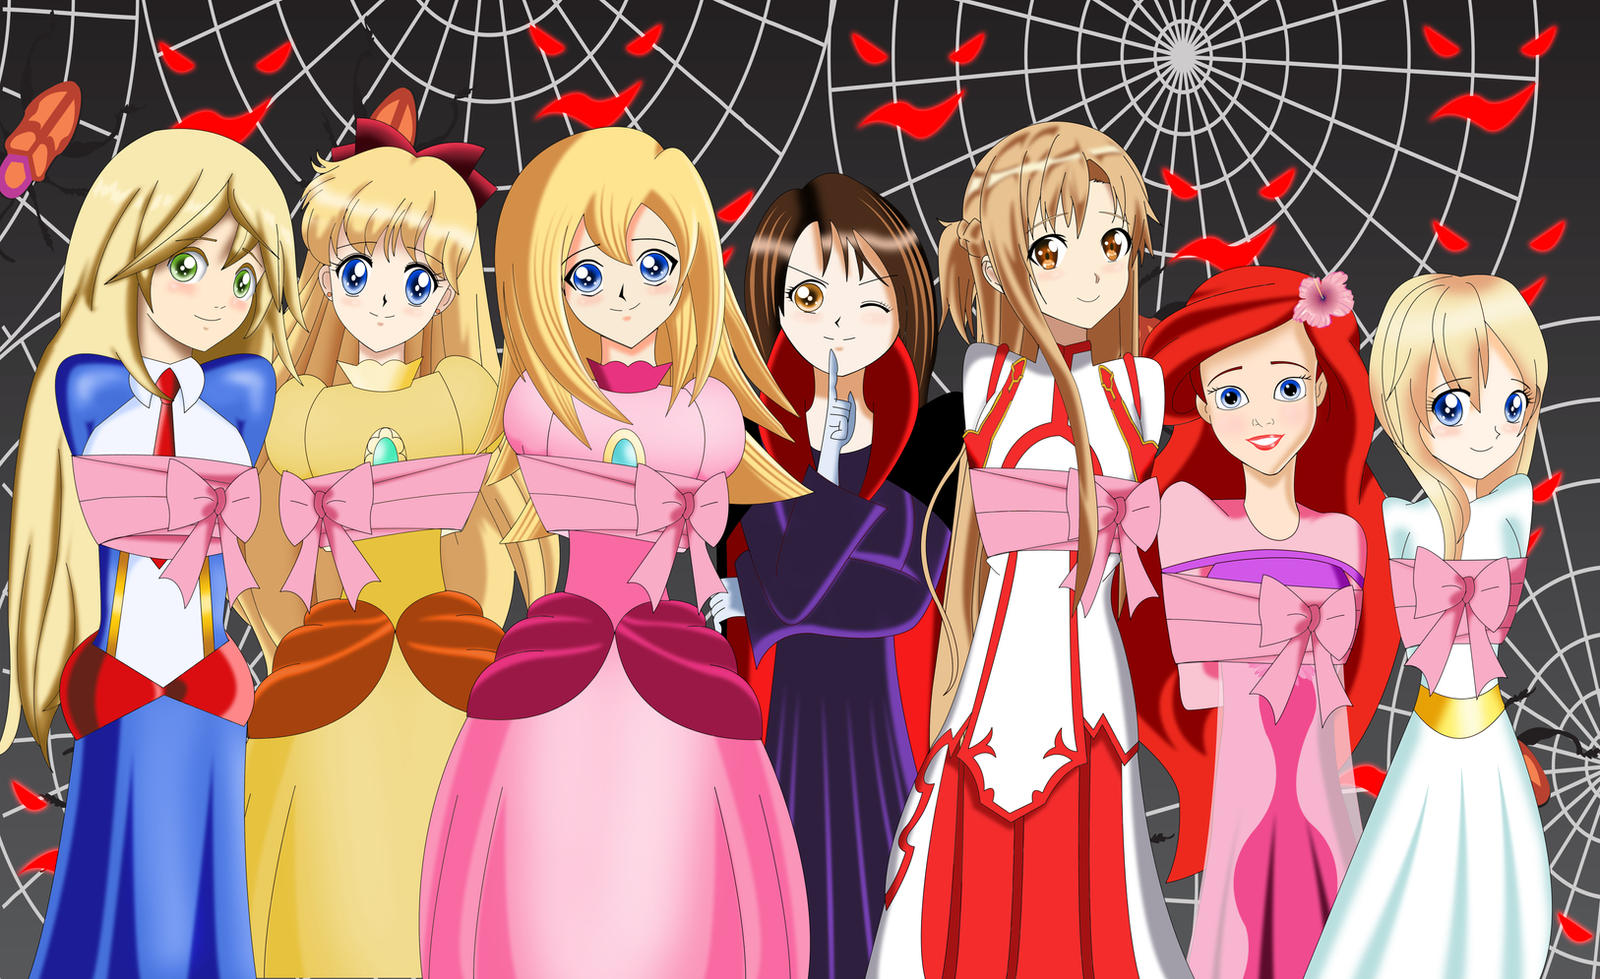 Fnaf Kidnapped Princess Deviantart: .: Be Quiet,I'm Kidnapping Princesses :. By Sincity2100 On